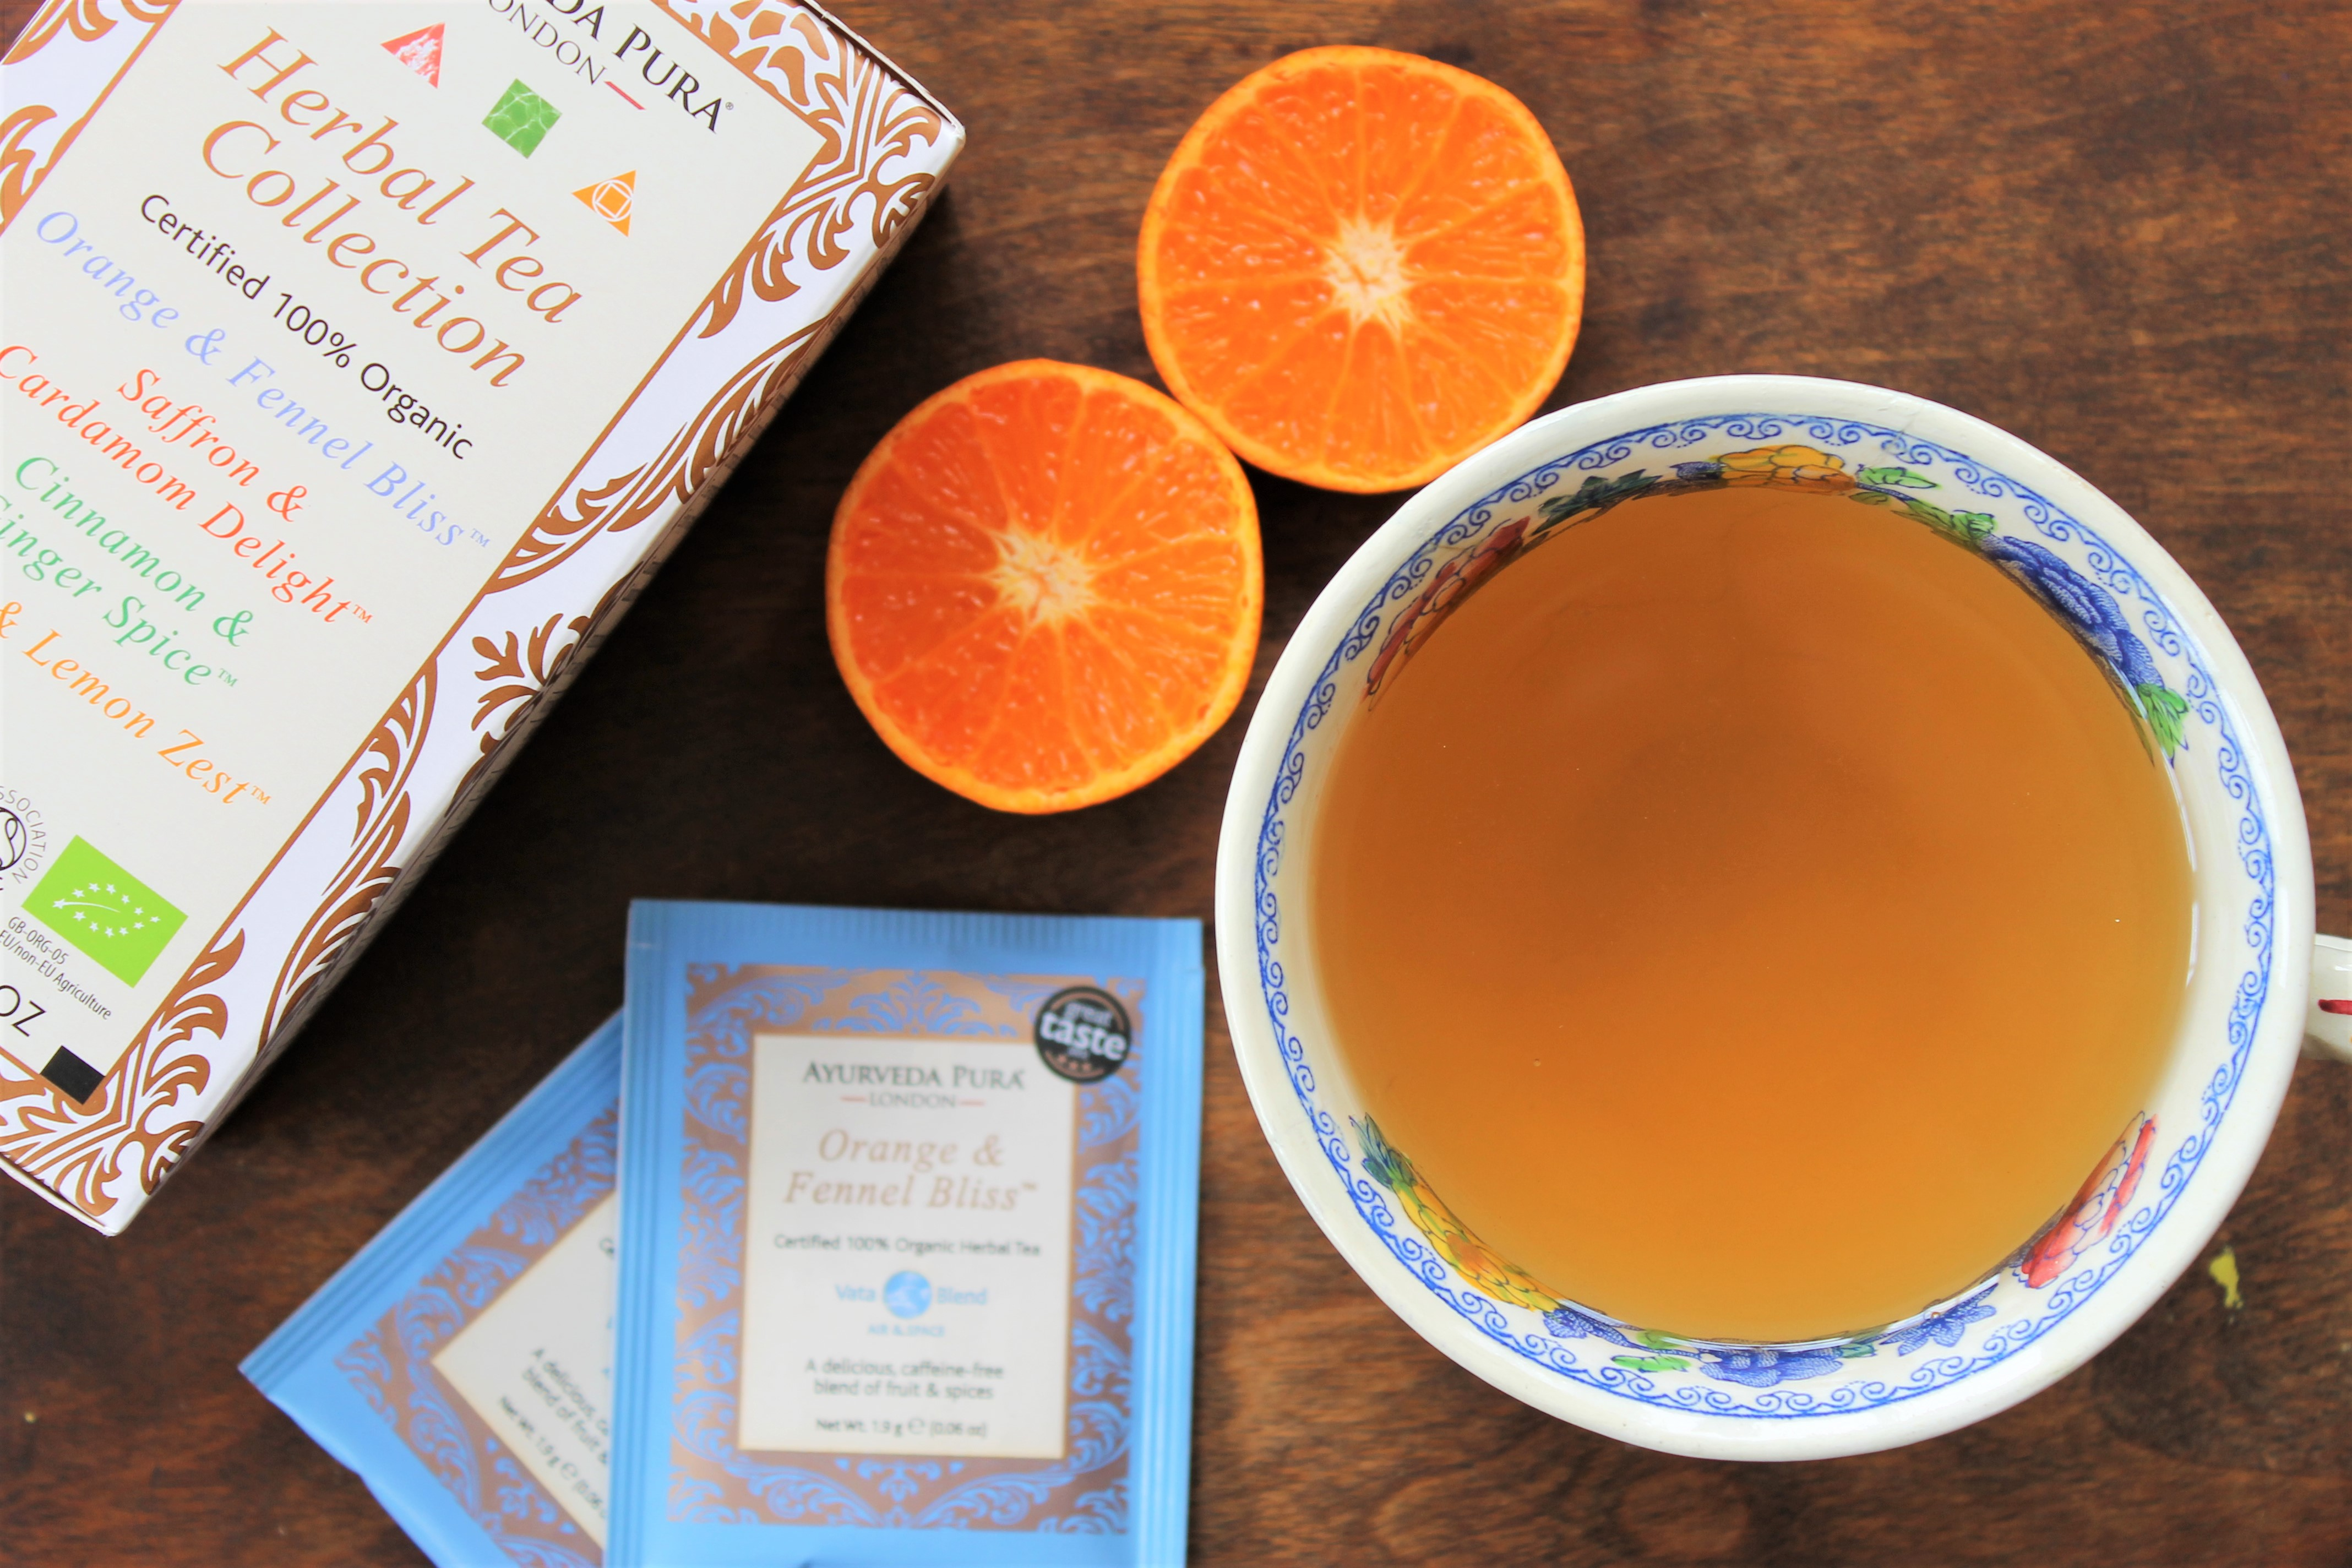 Ayurveda Pura Orange and Fennel Bliss Tea Review